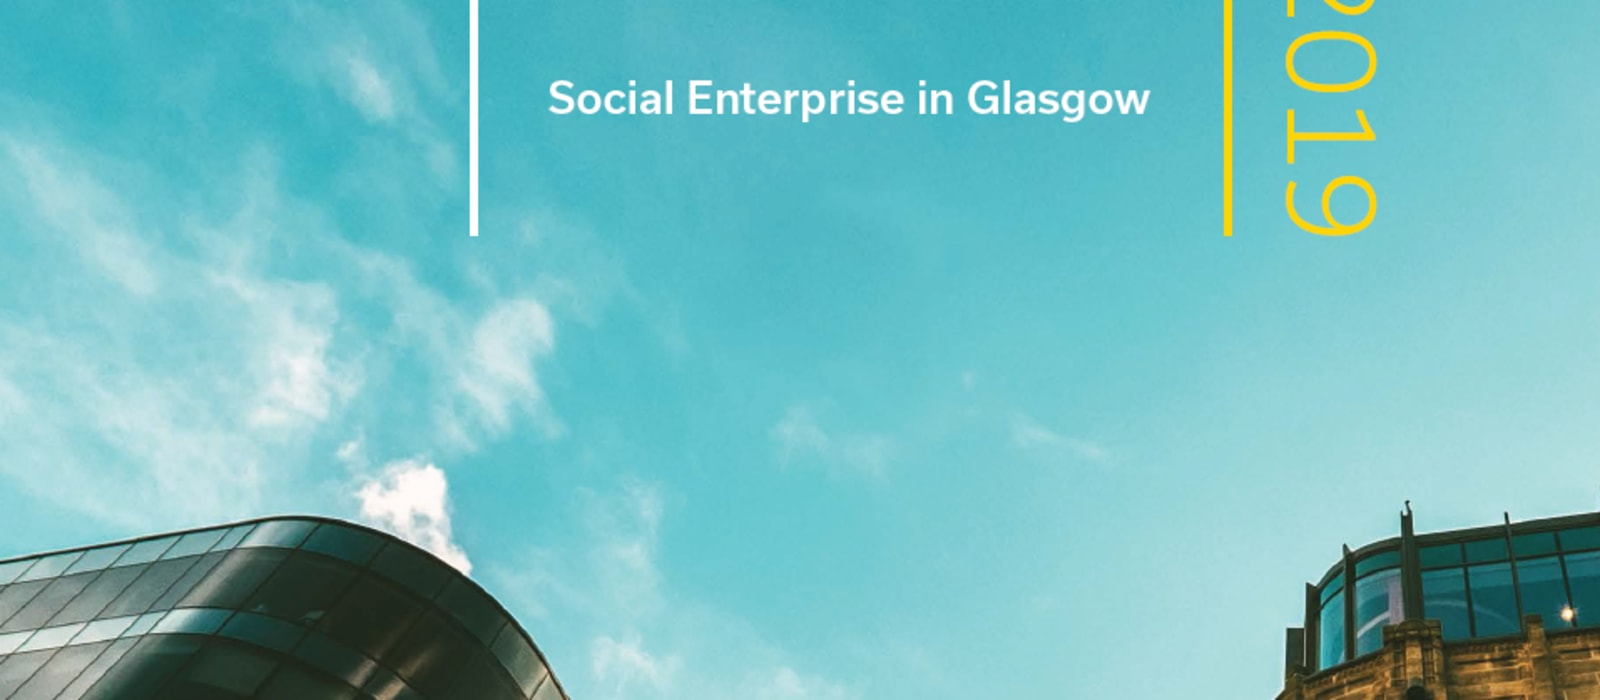 Social Enterprise in Glasgow report published